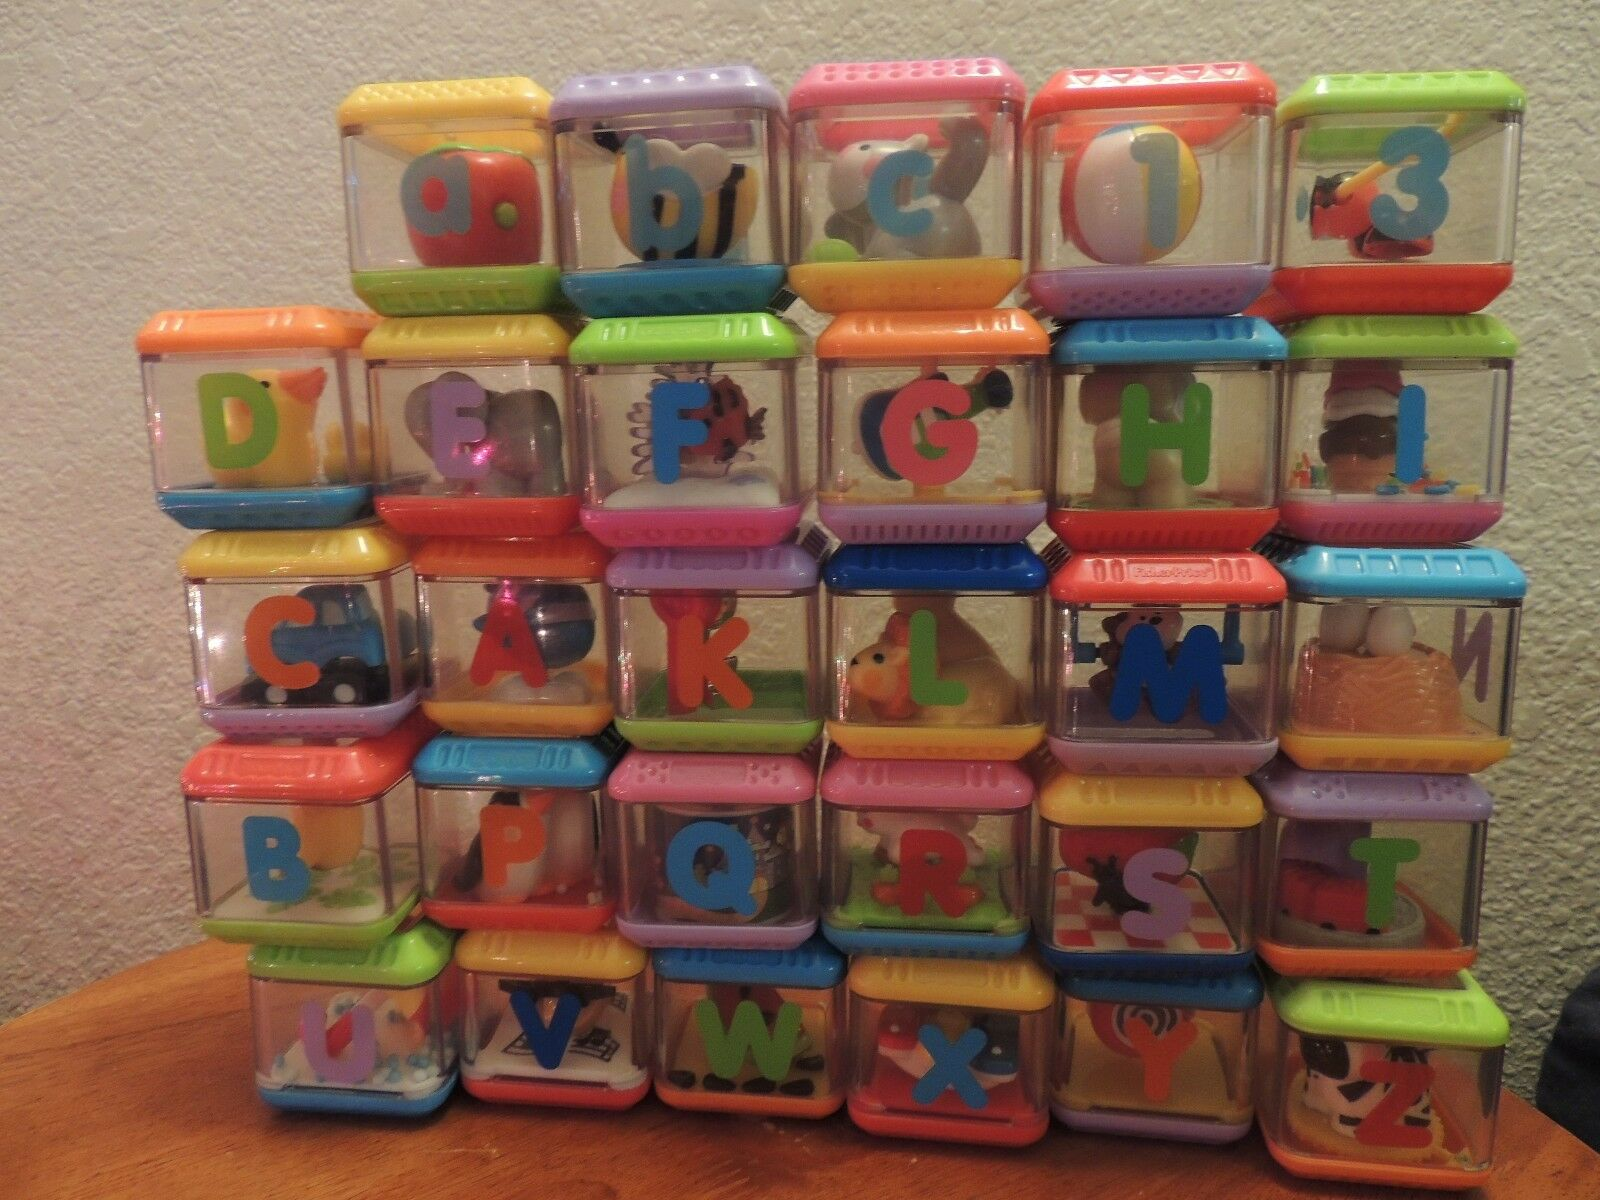 Fisher Price Peek A Boo Block Blocks U Choose Letter Alphabet Shapes Baby Gift 1 Of See More